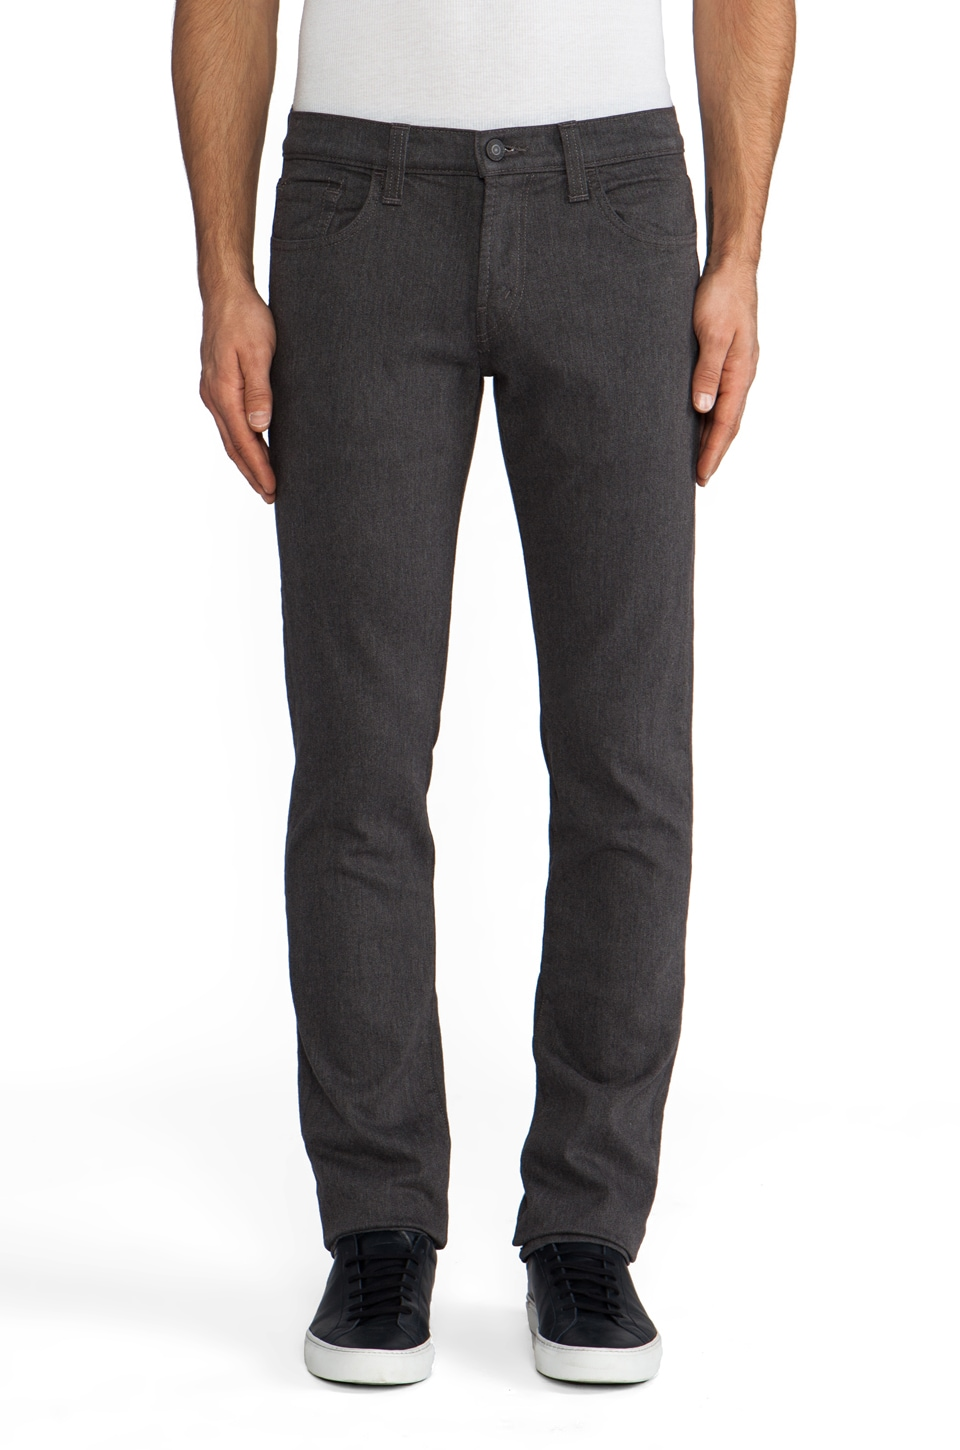 J Brand Kane in Grey Melange